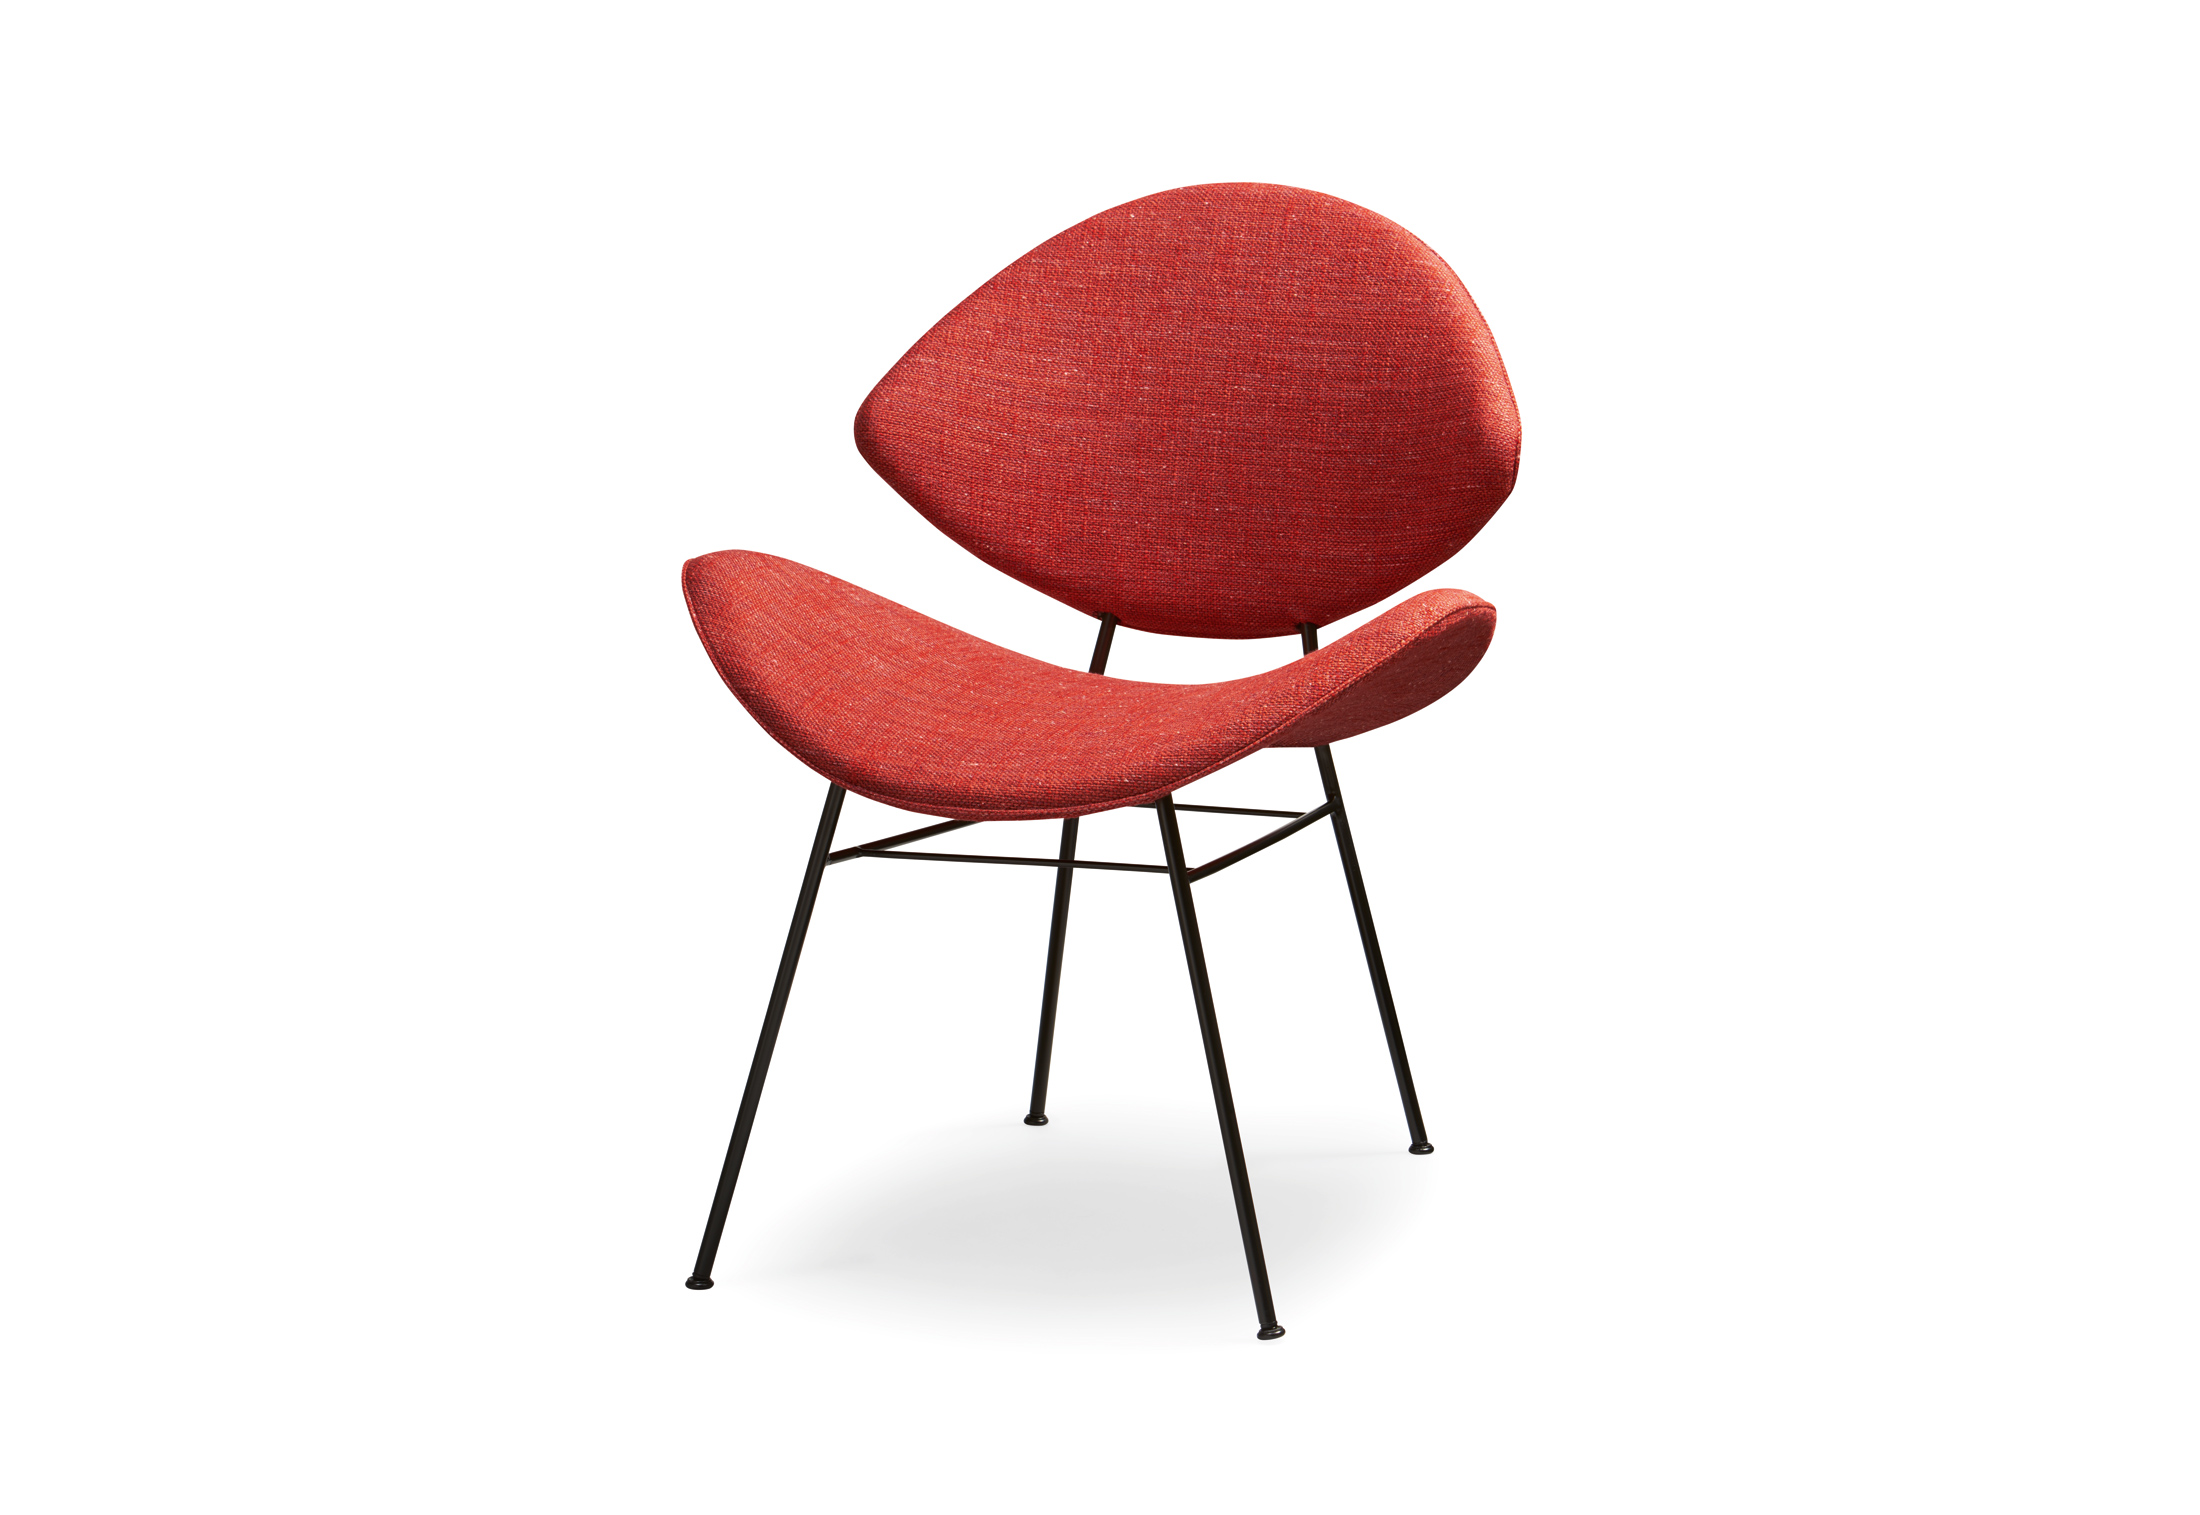 Fishnet Chair by Sadi & Neptun Ozis for Walter Knoll